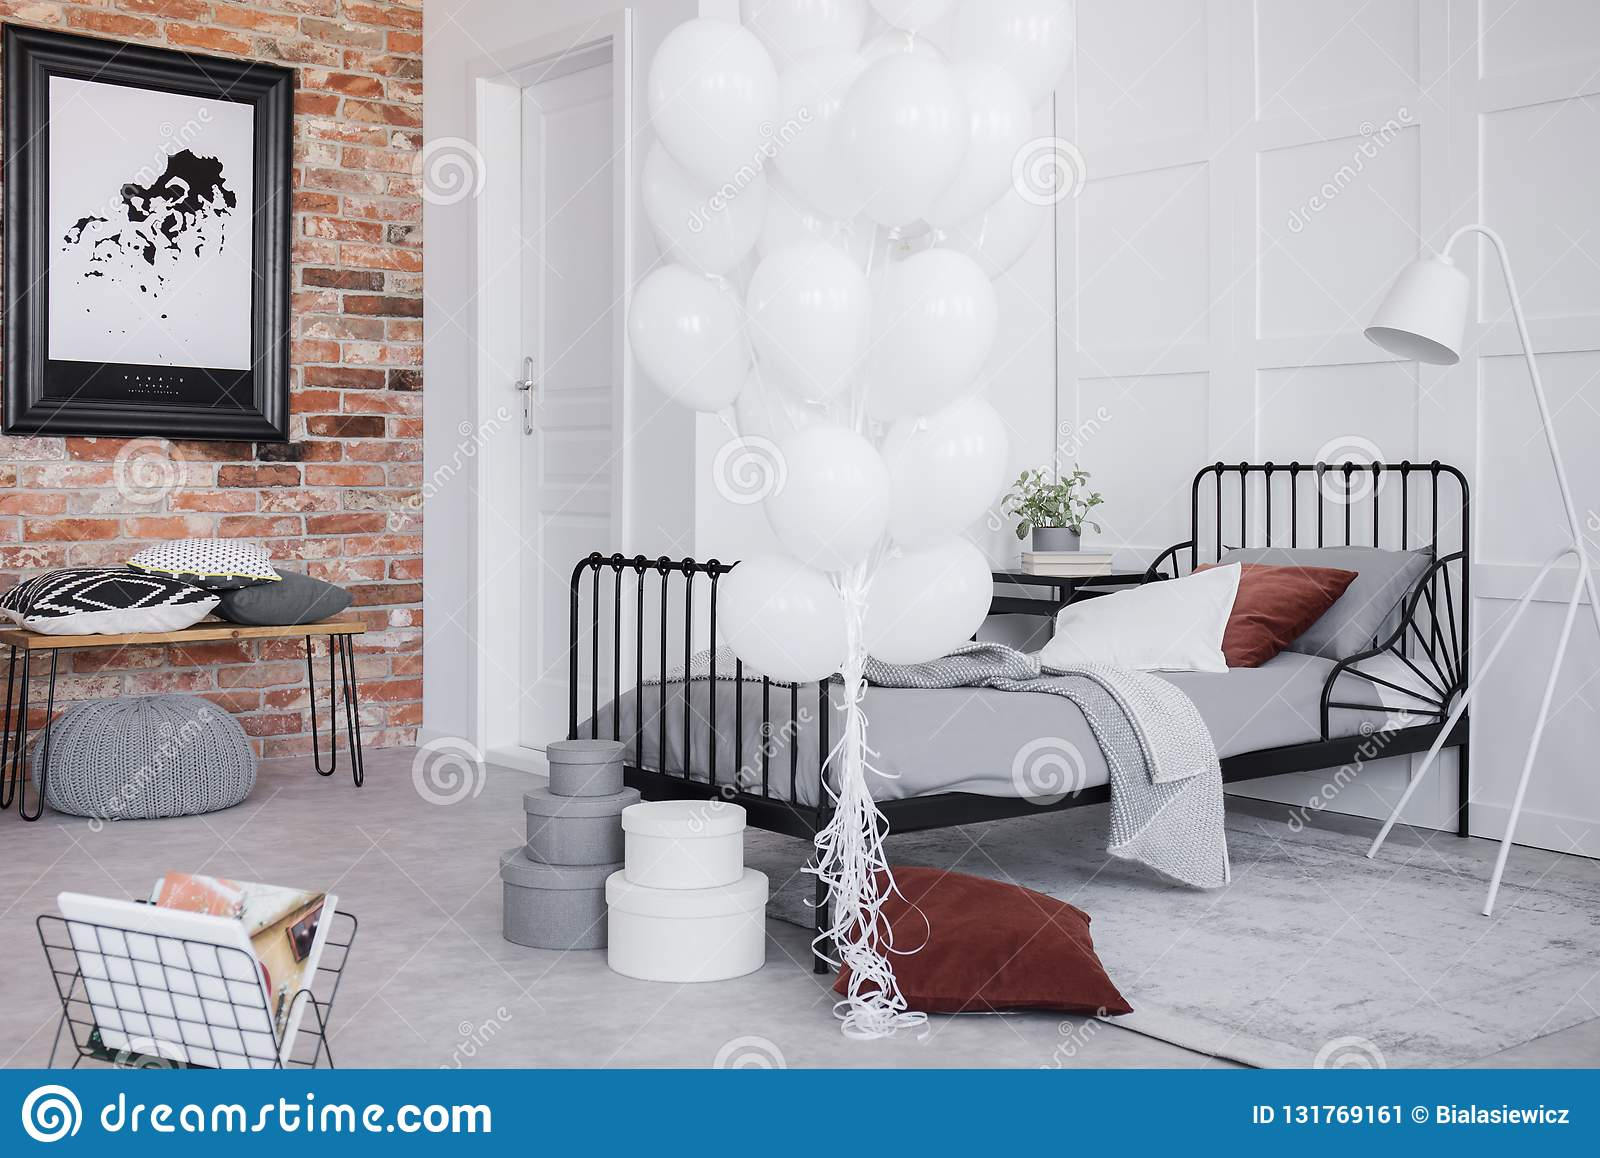 Bedroom interior with grey bedding, bunch of white balloons and black frame on the brick wall, real photo